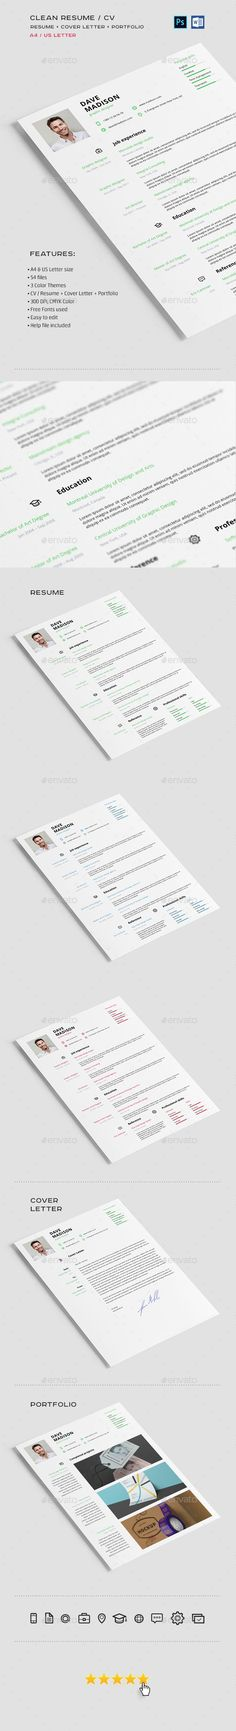 Buy Clean Resume / CV by Shumchuk on GraphicRiver. Features: Here is a simple and modern resume that you were looking for. It's easy to edit, also it has three color va. College Resume Template, Simple Resume Template, Resume Design Template, Creative Resume Templates, Cv Template, Modern Resume, Cover Letter For Resume, Resume Cv, Cv Design